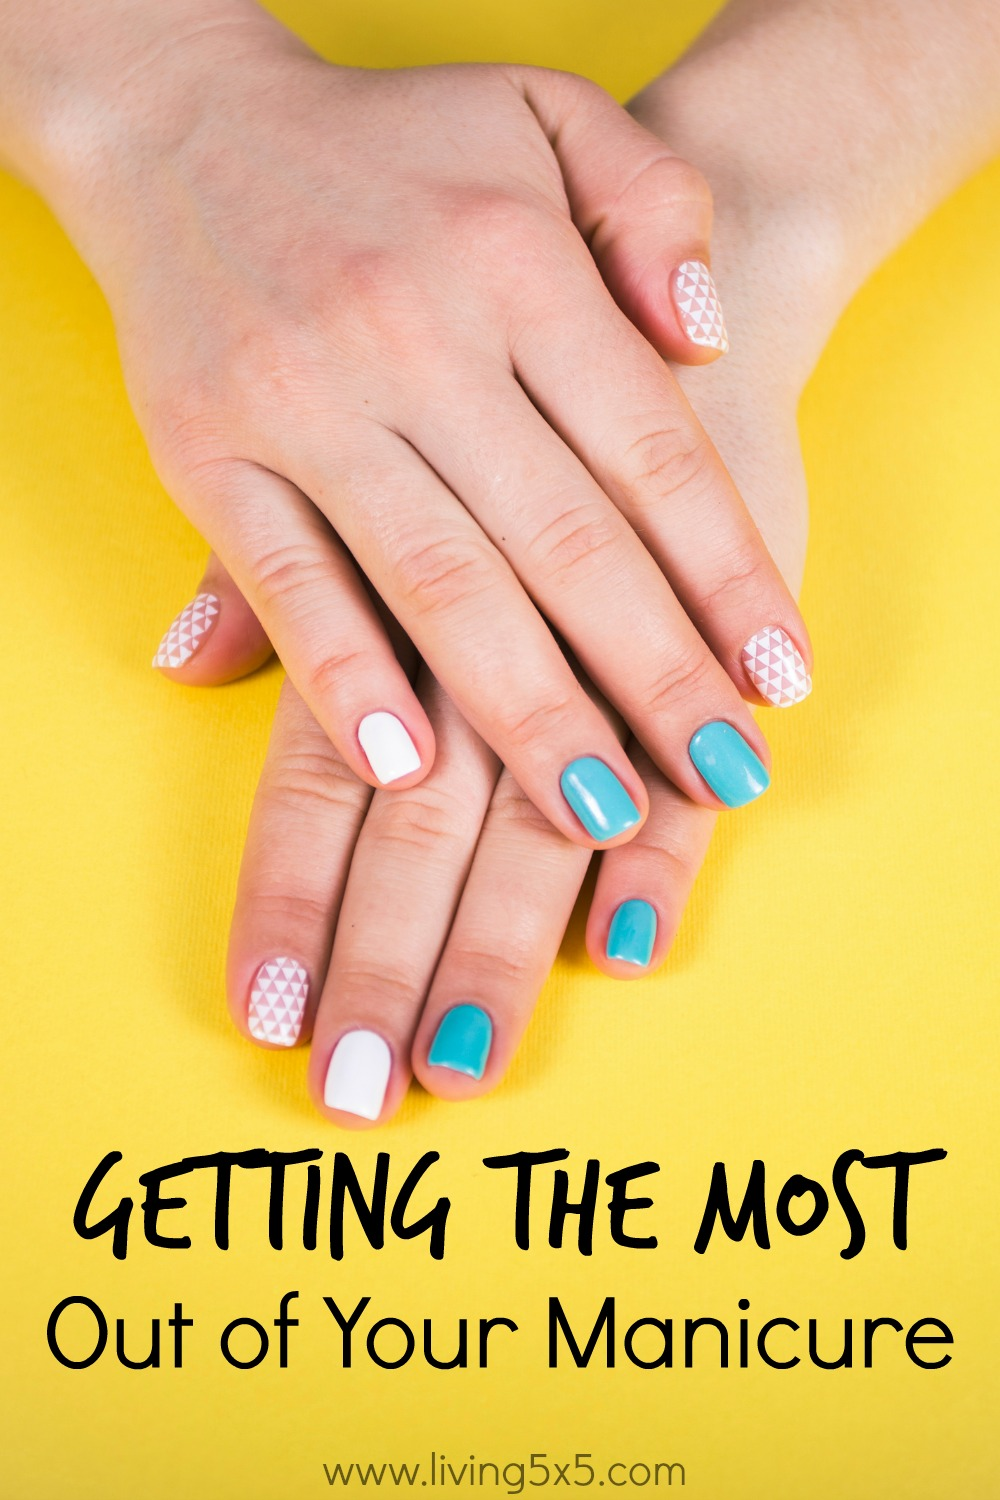 Today's topic is a fun one because it's all about getting the most out of your manicure! See what the Pros and Cons are when pampering yourself.